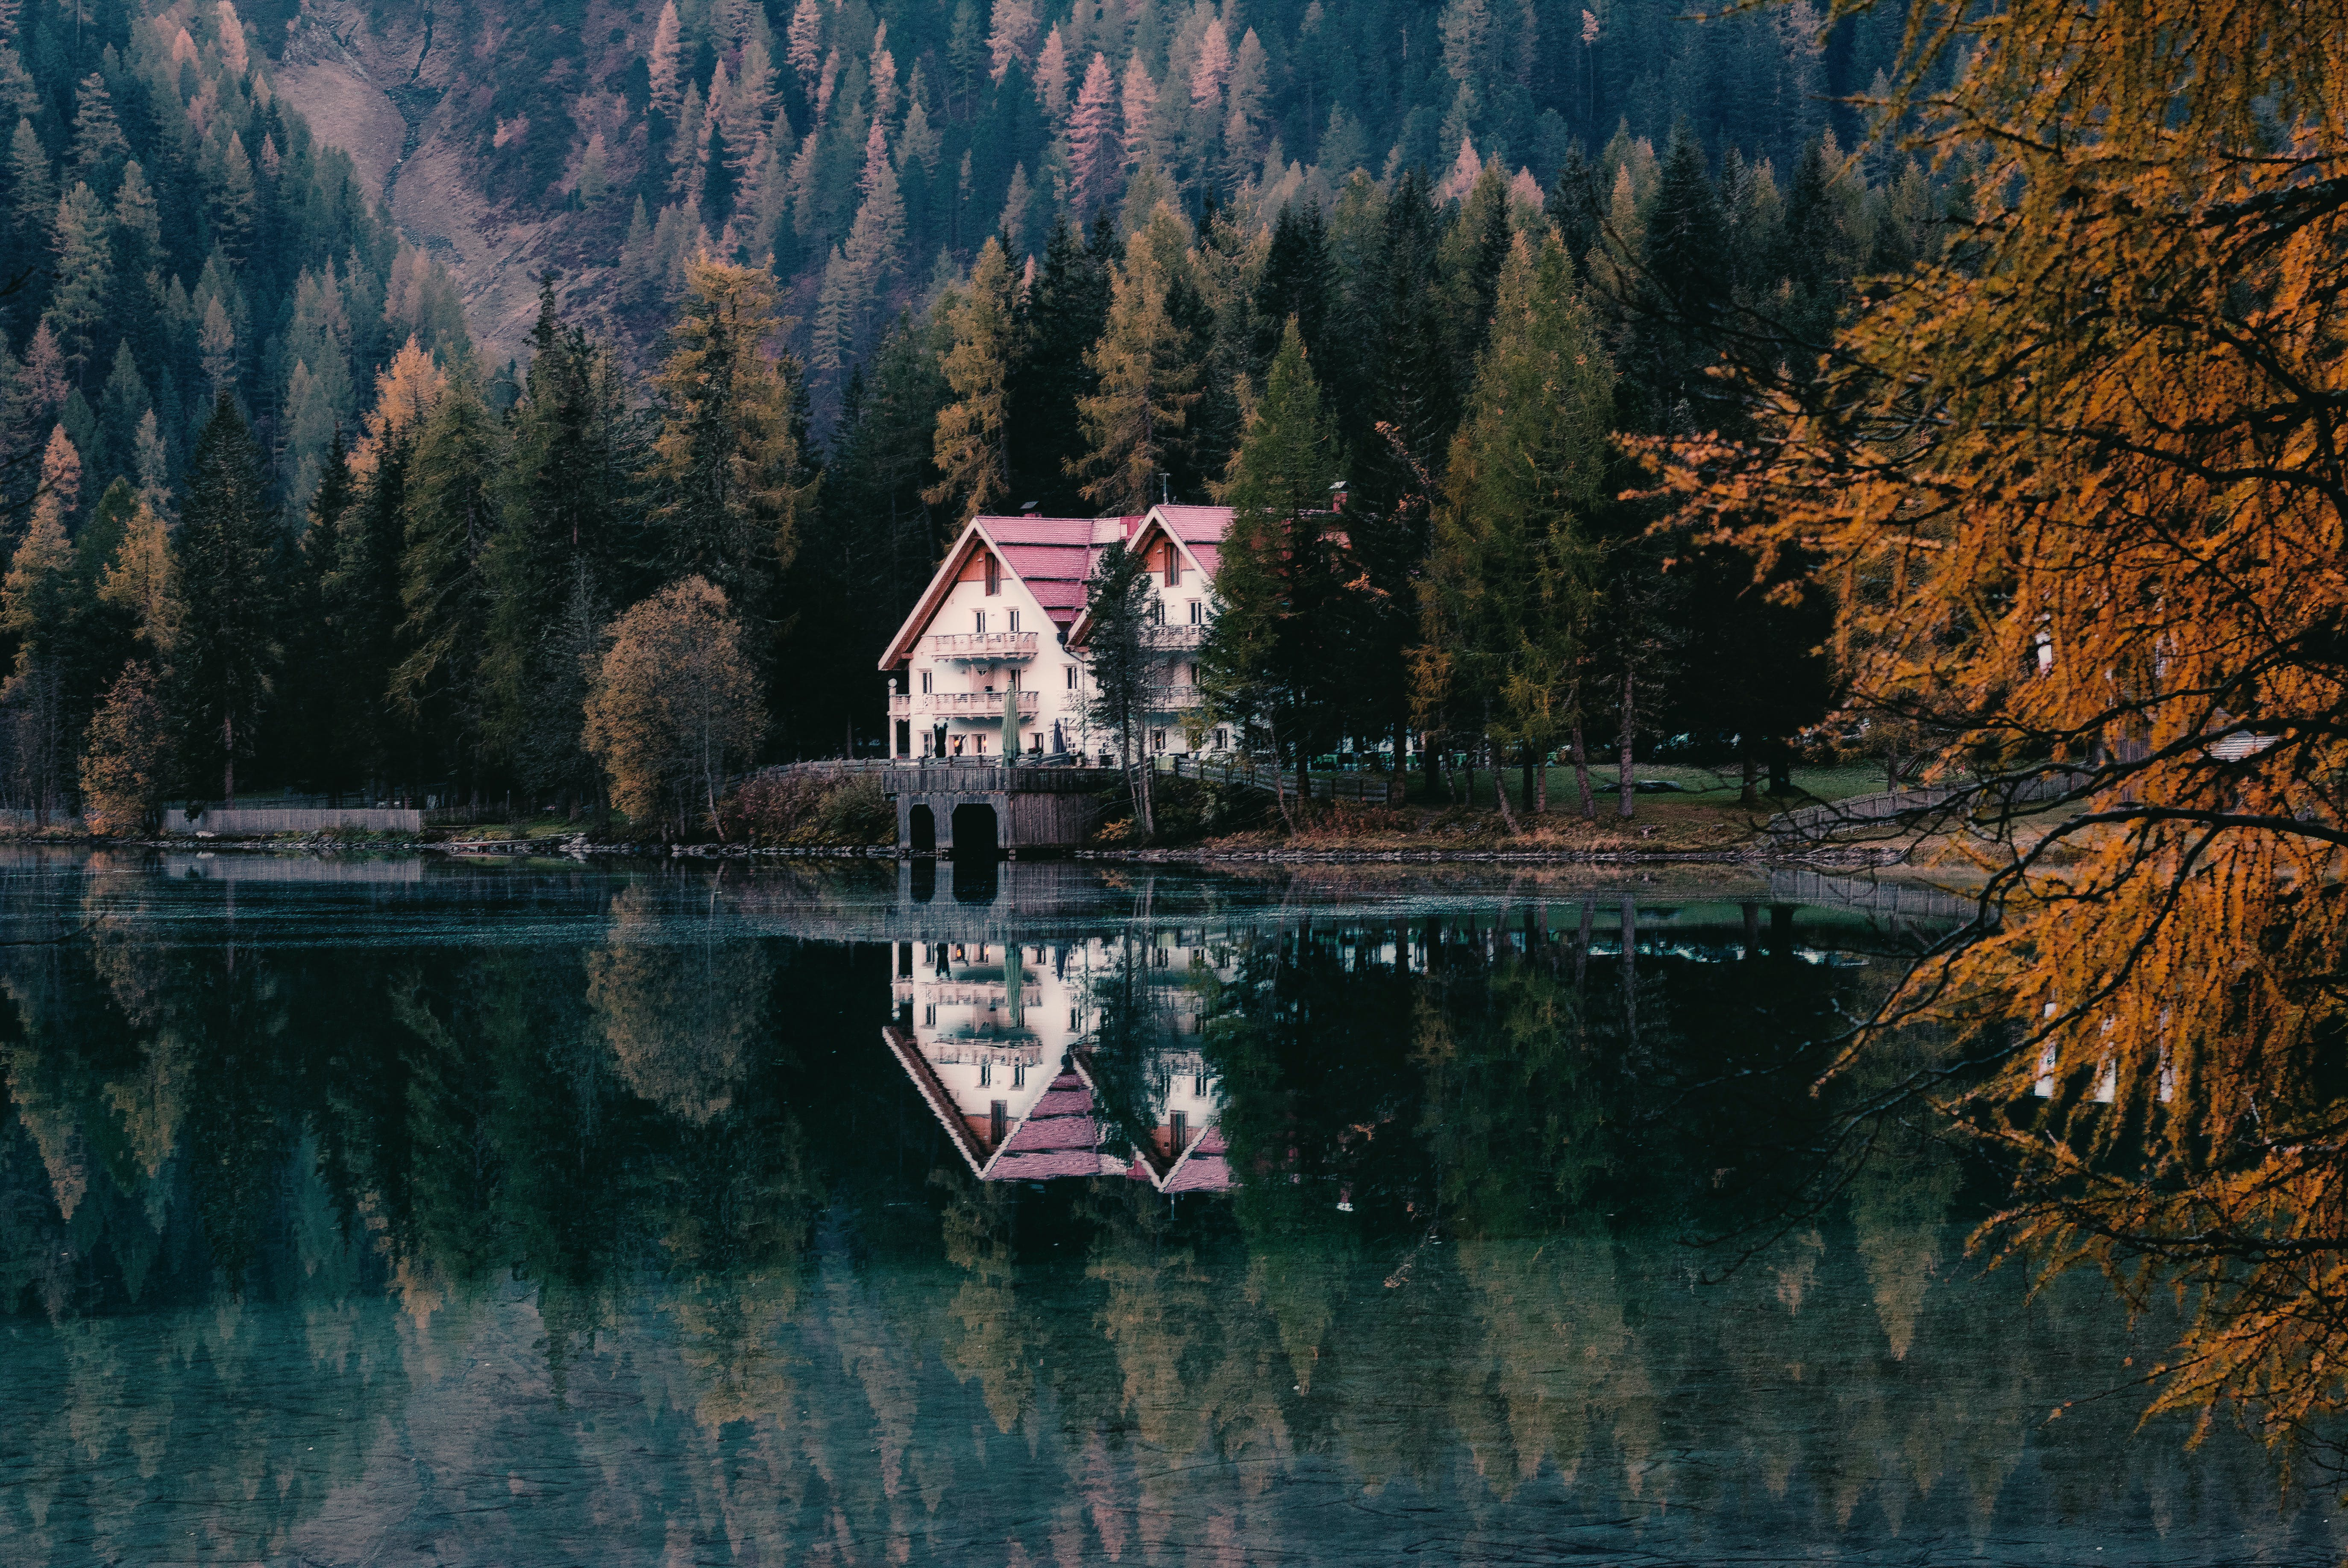 architecture, autumn, calm waters